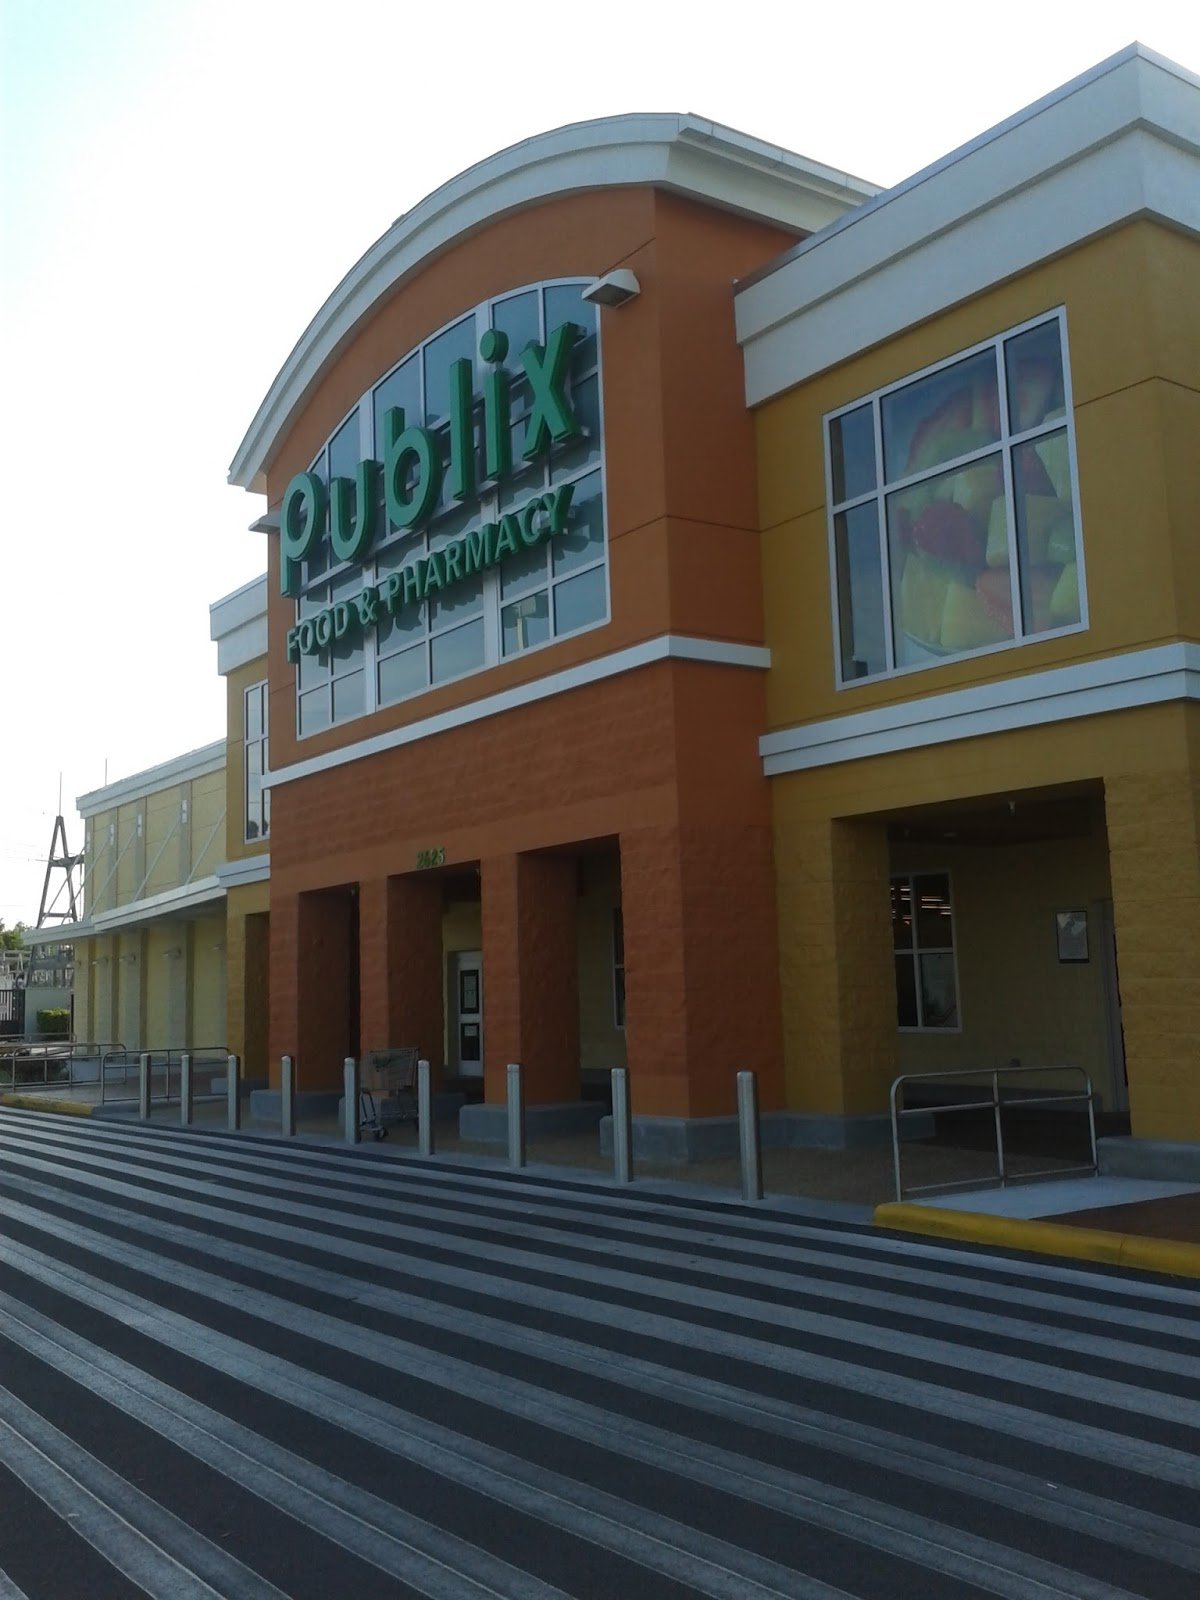 Albertsons Florida Blog: How Shopping Became a Pleasure - A Look at ...